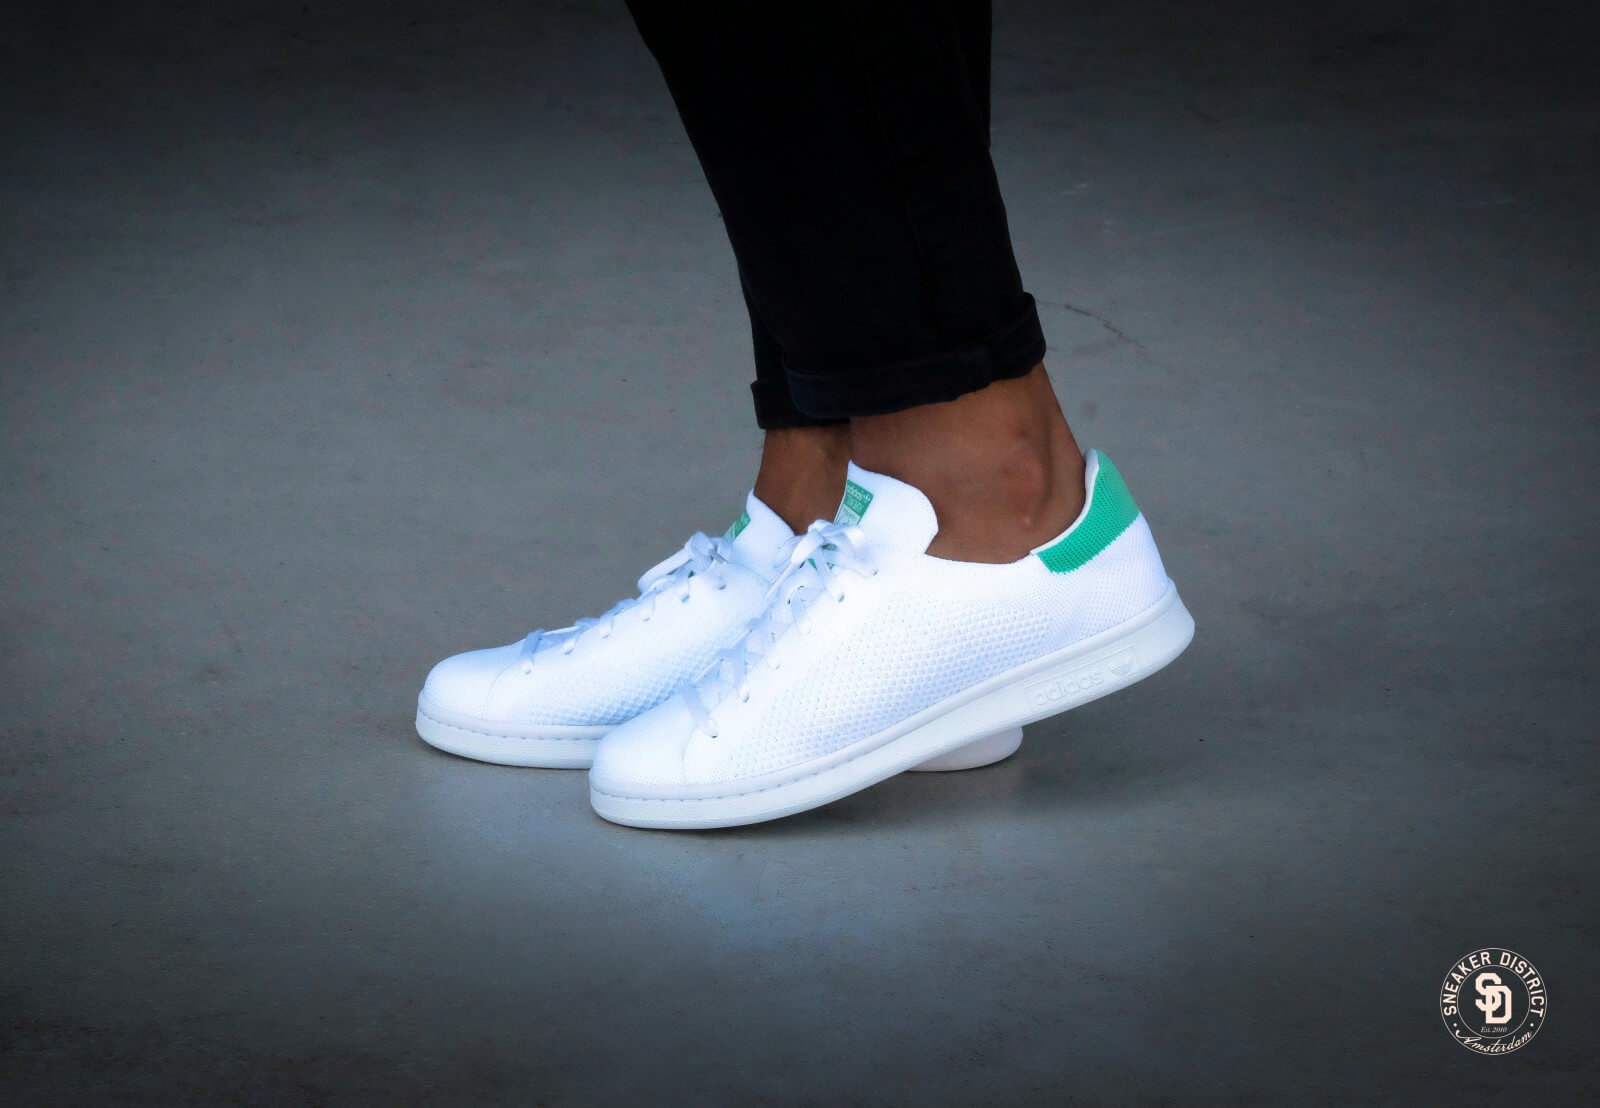 Adidas Stan Smith PK - Footwear White/Green Glow